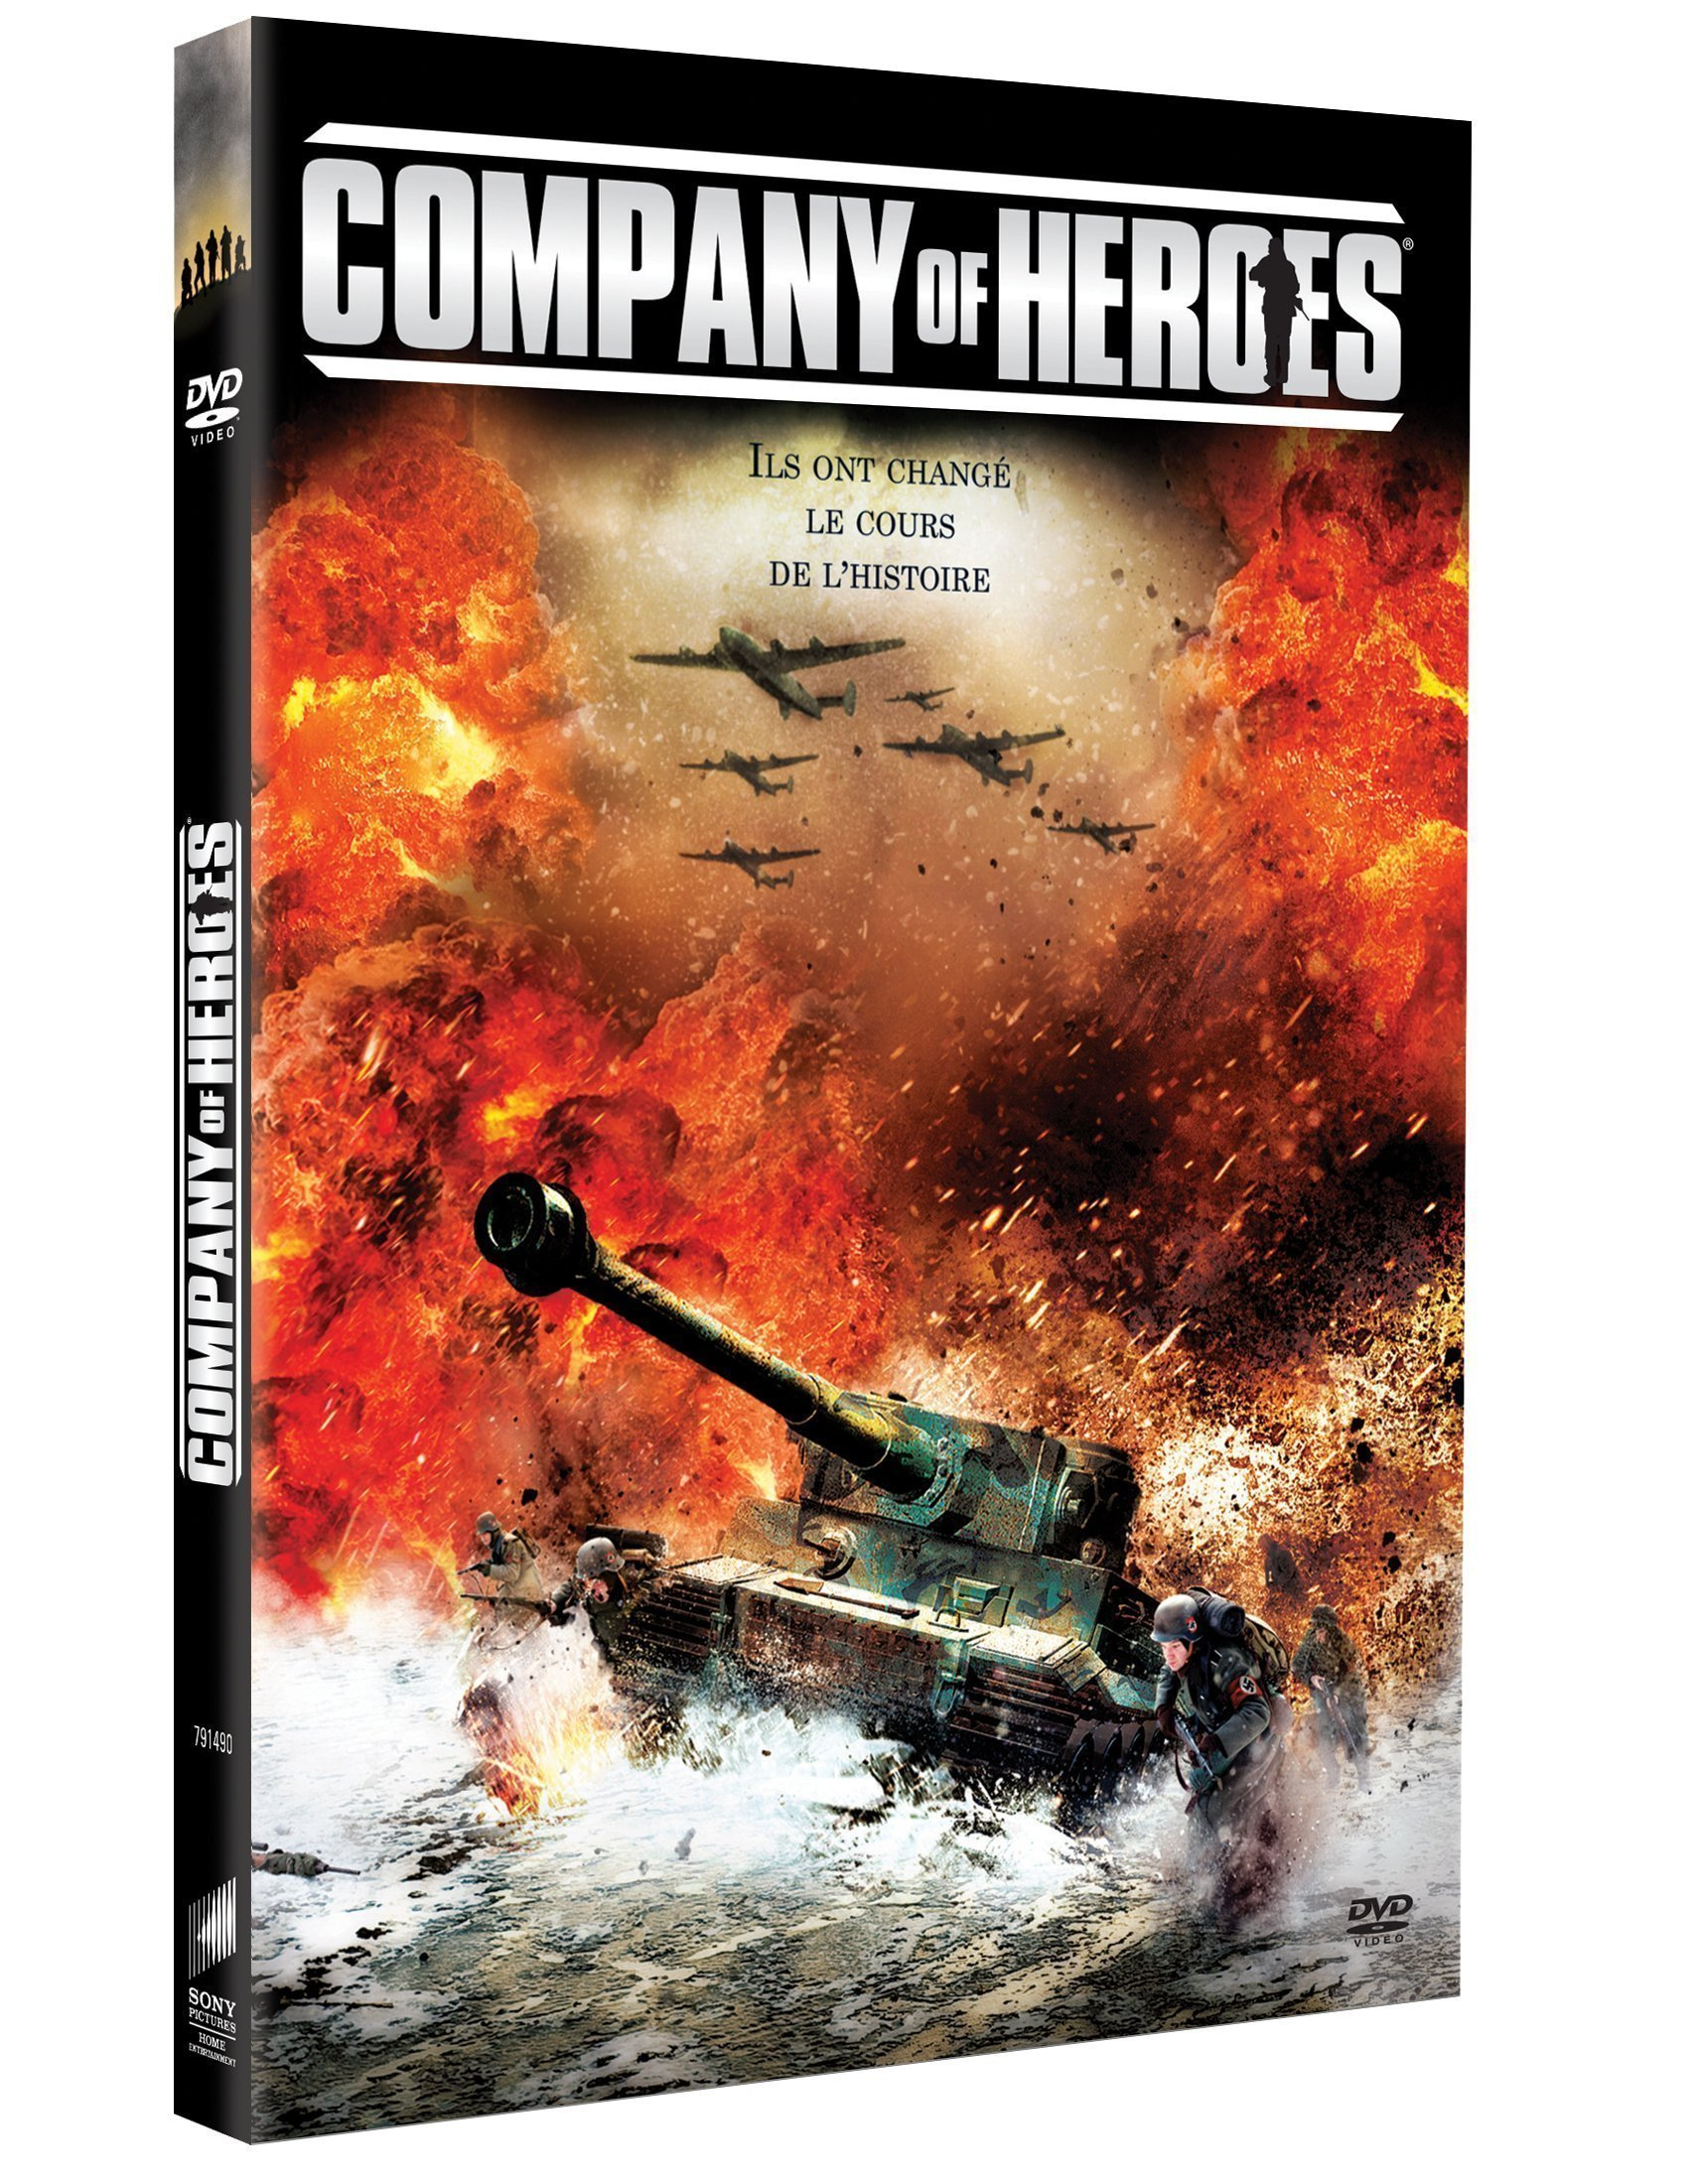 Company of Heroes DVD